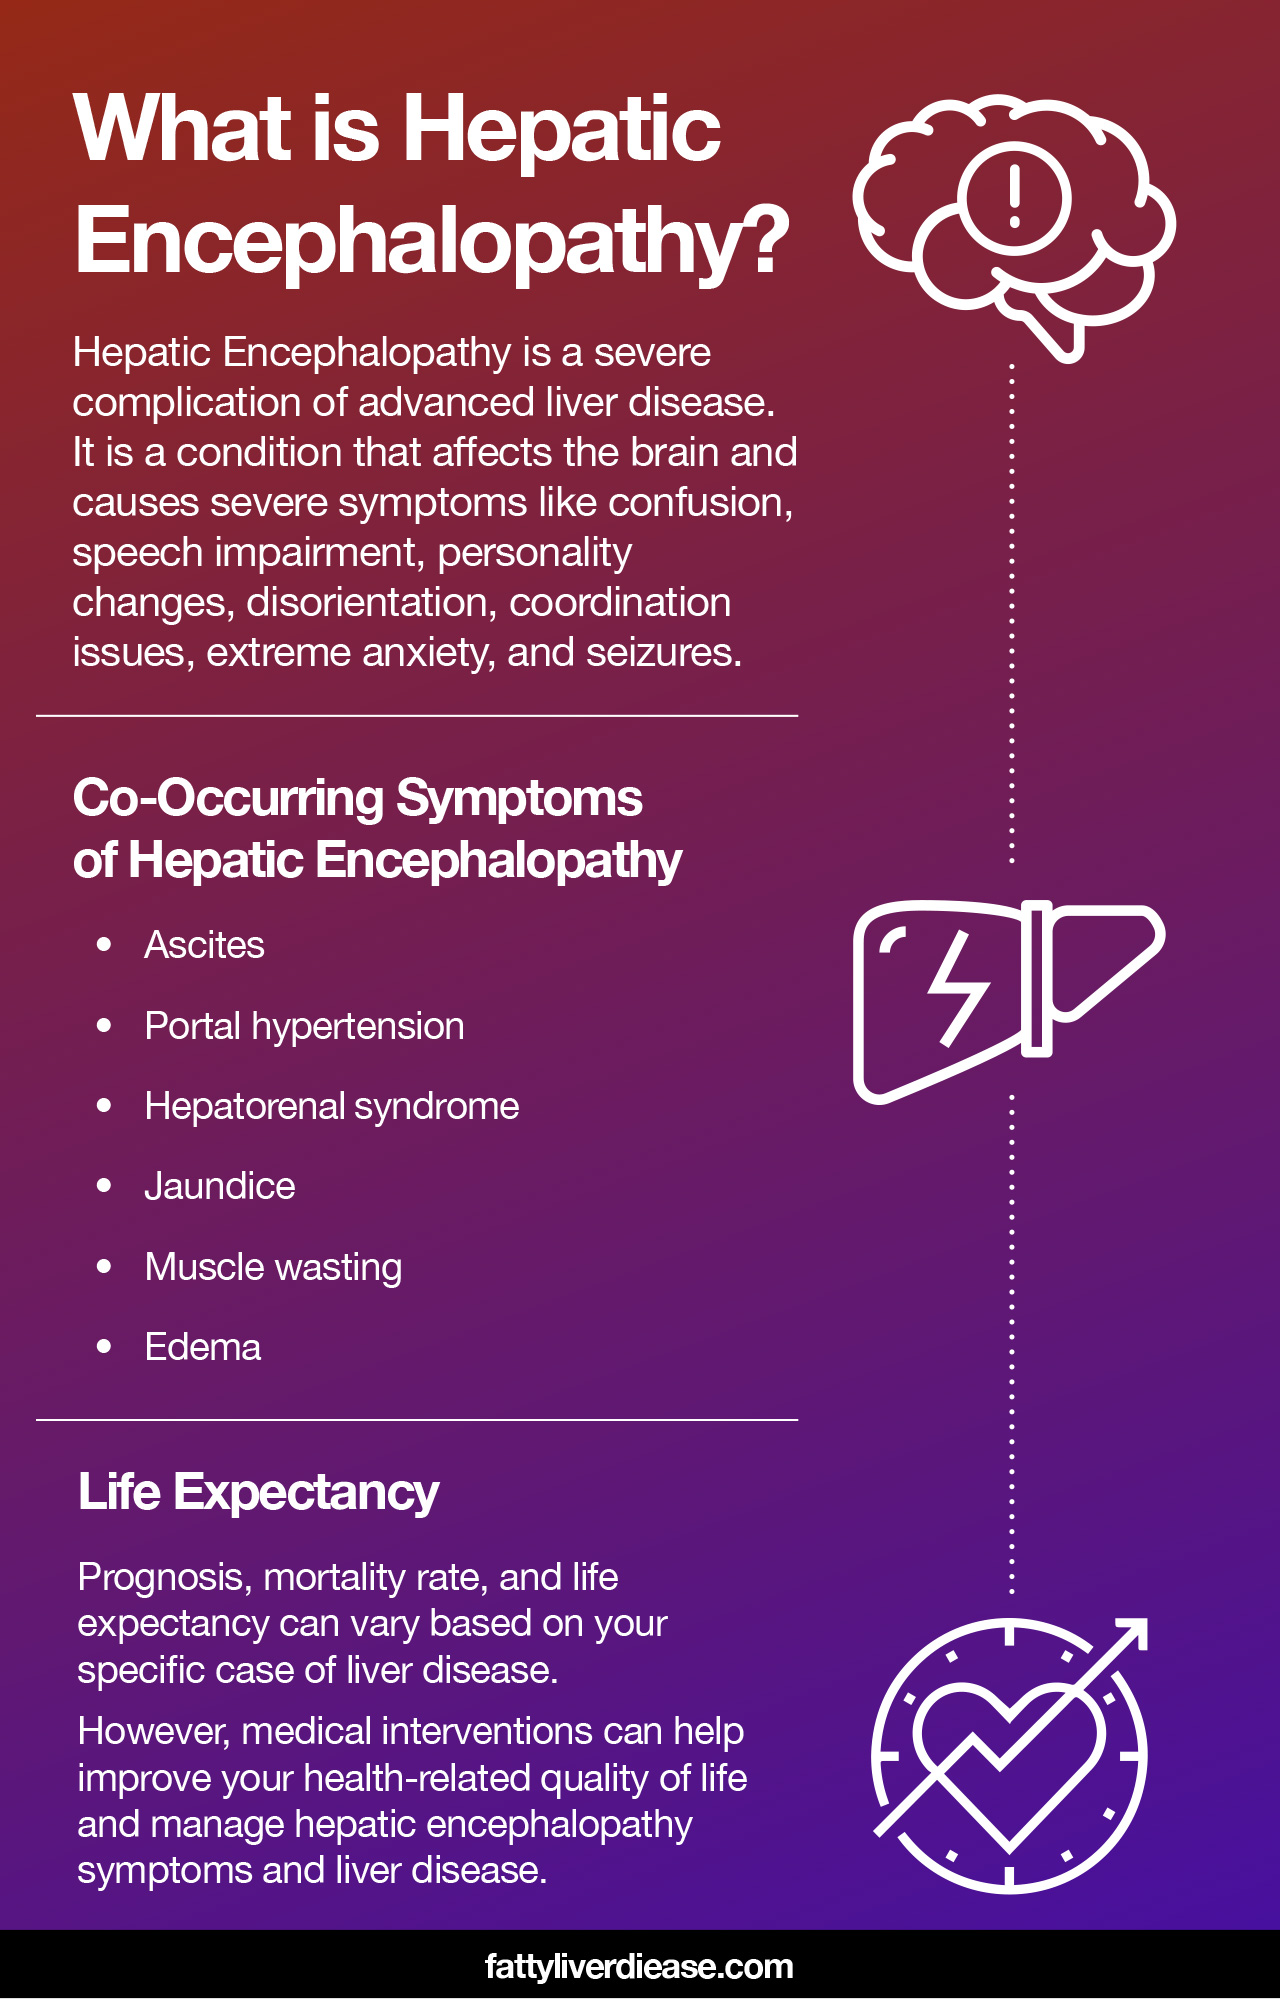 What Is Hepatic Encephalopathy Life Expectancy?